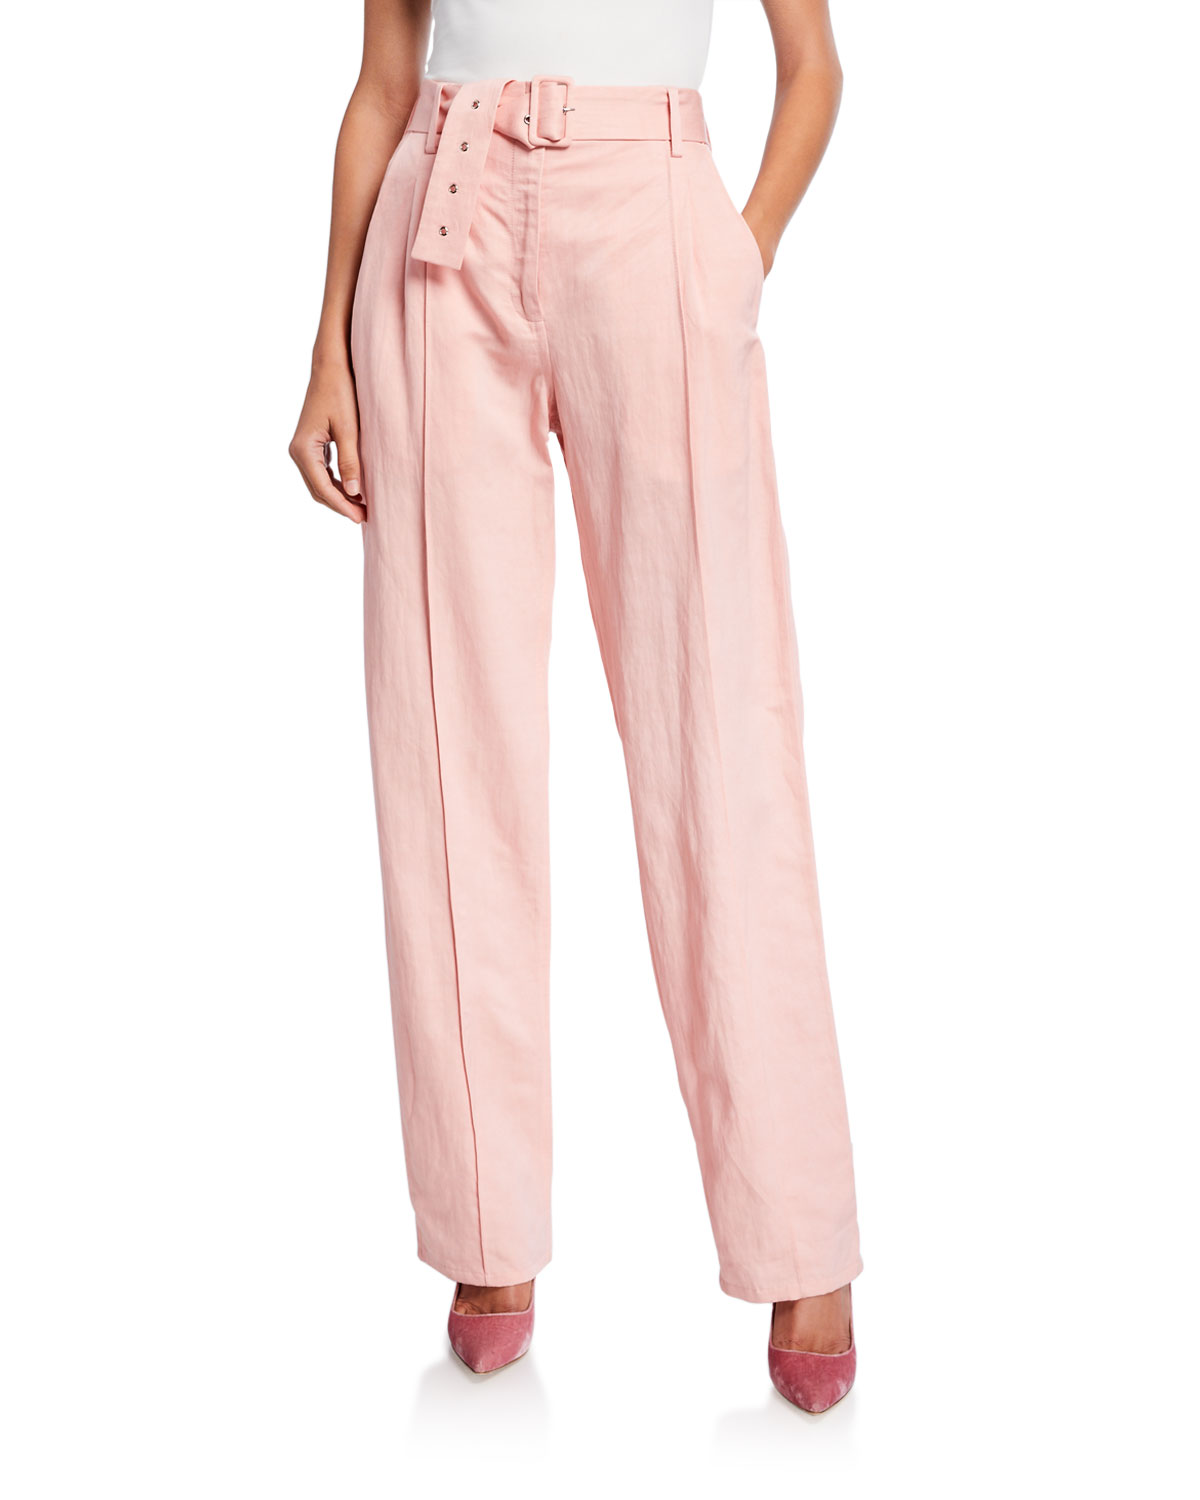 LAPOINTE Belted Linen-Blend Pintucked Pants